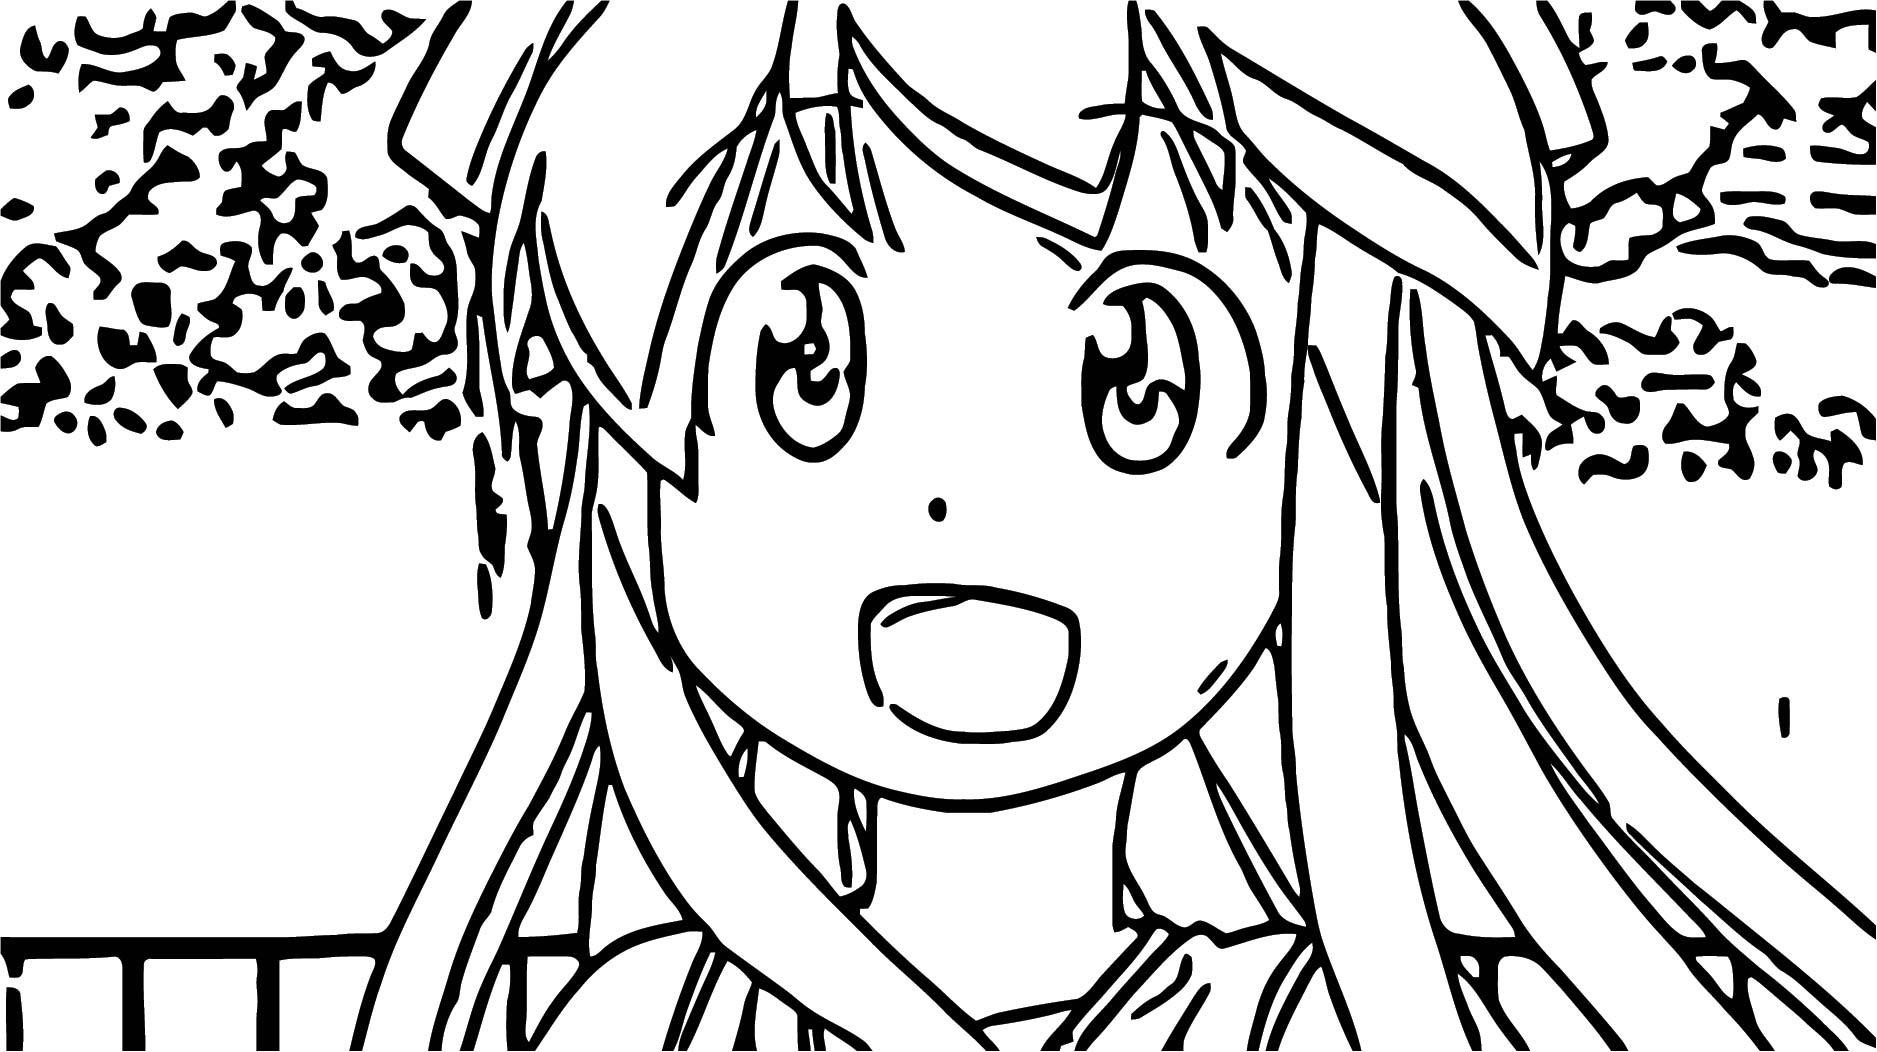 Sweet Face Squid Girl Season Episode Cartoon Coloring Page